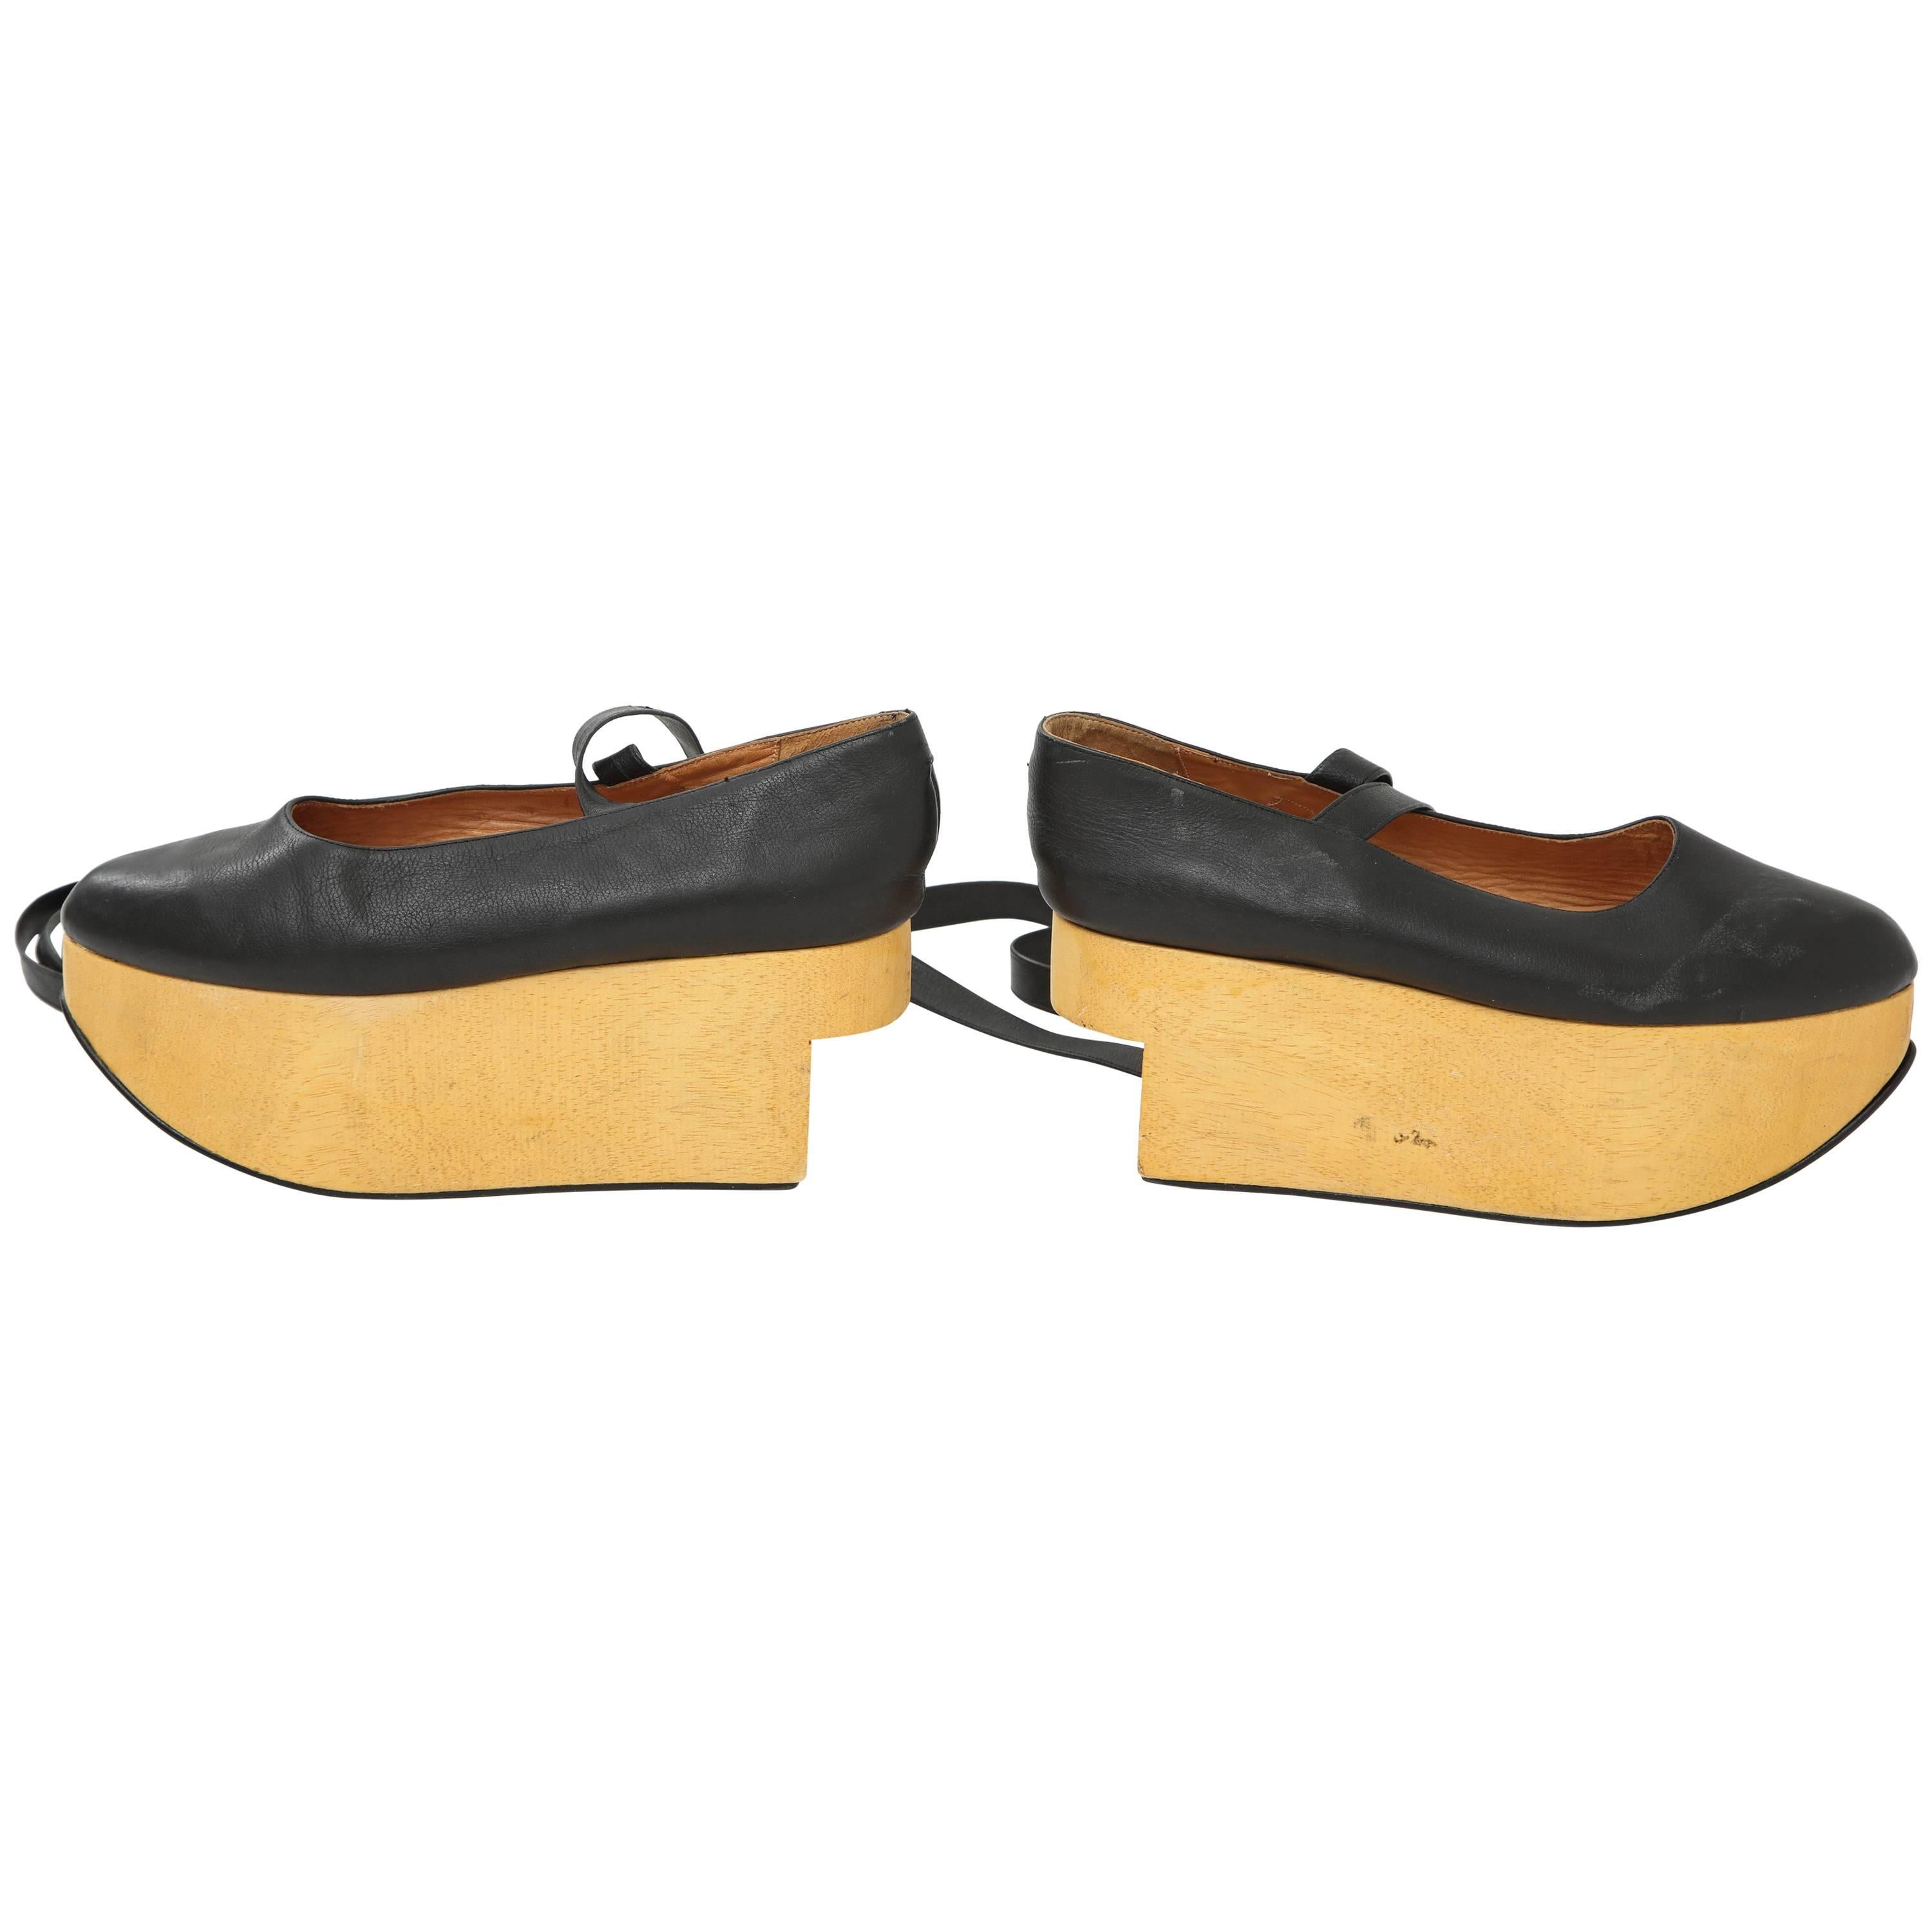 Pair Of 1985 Vivienne Westwood Iconic Rocking Horse Shoes